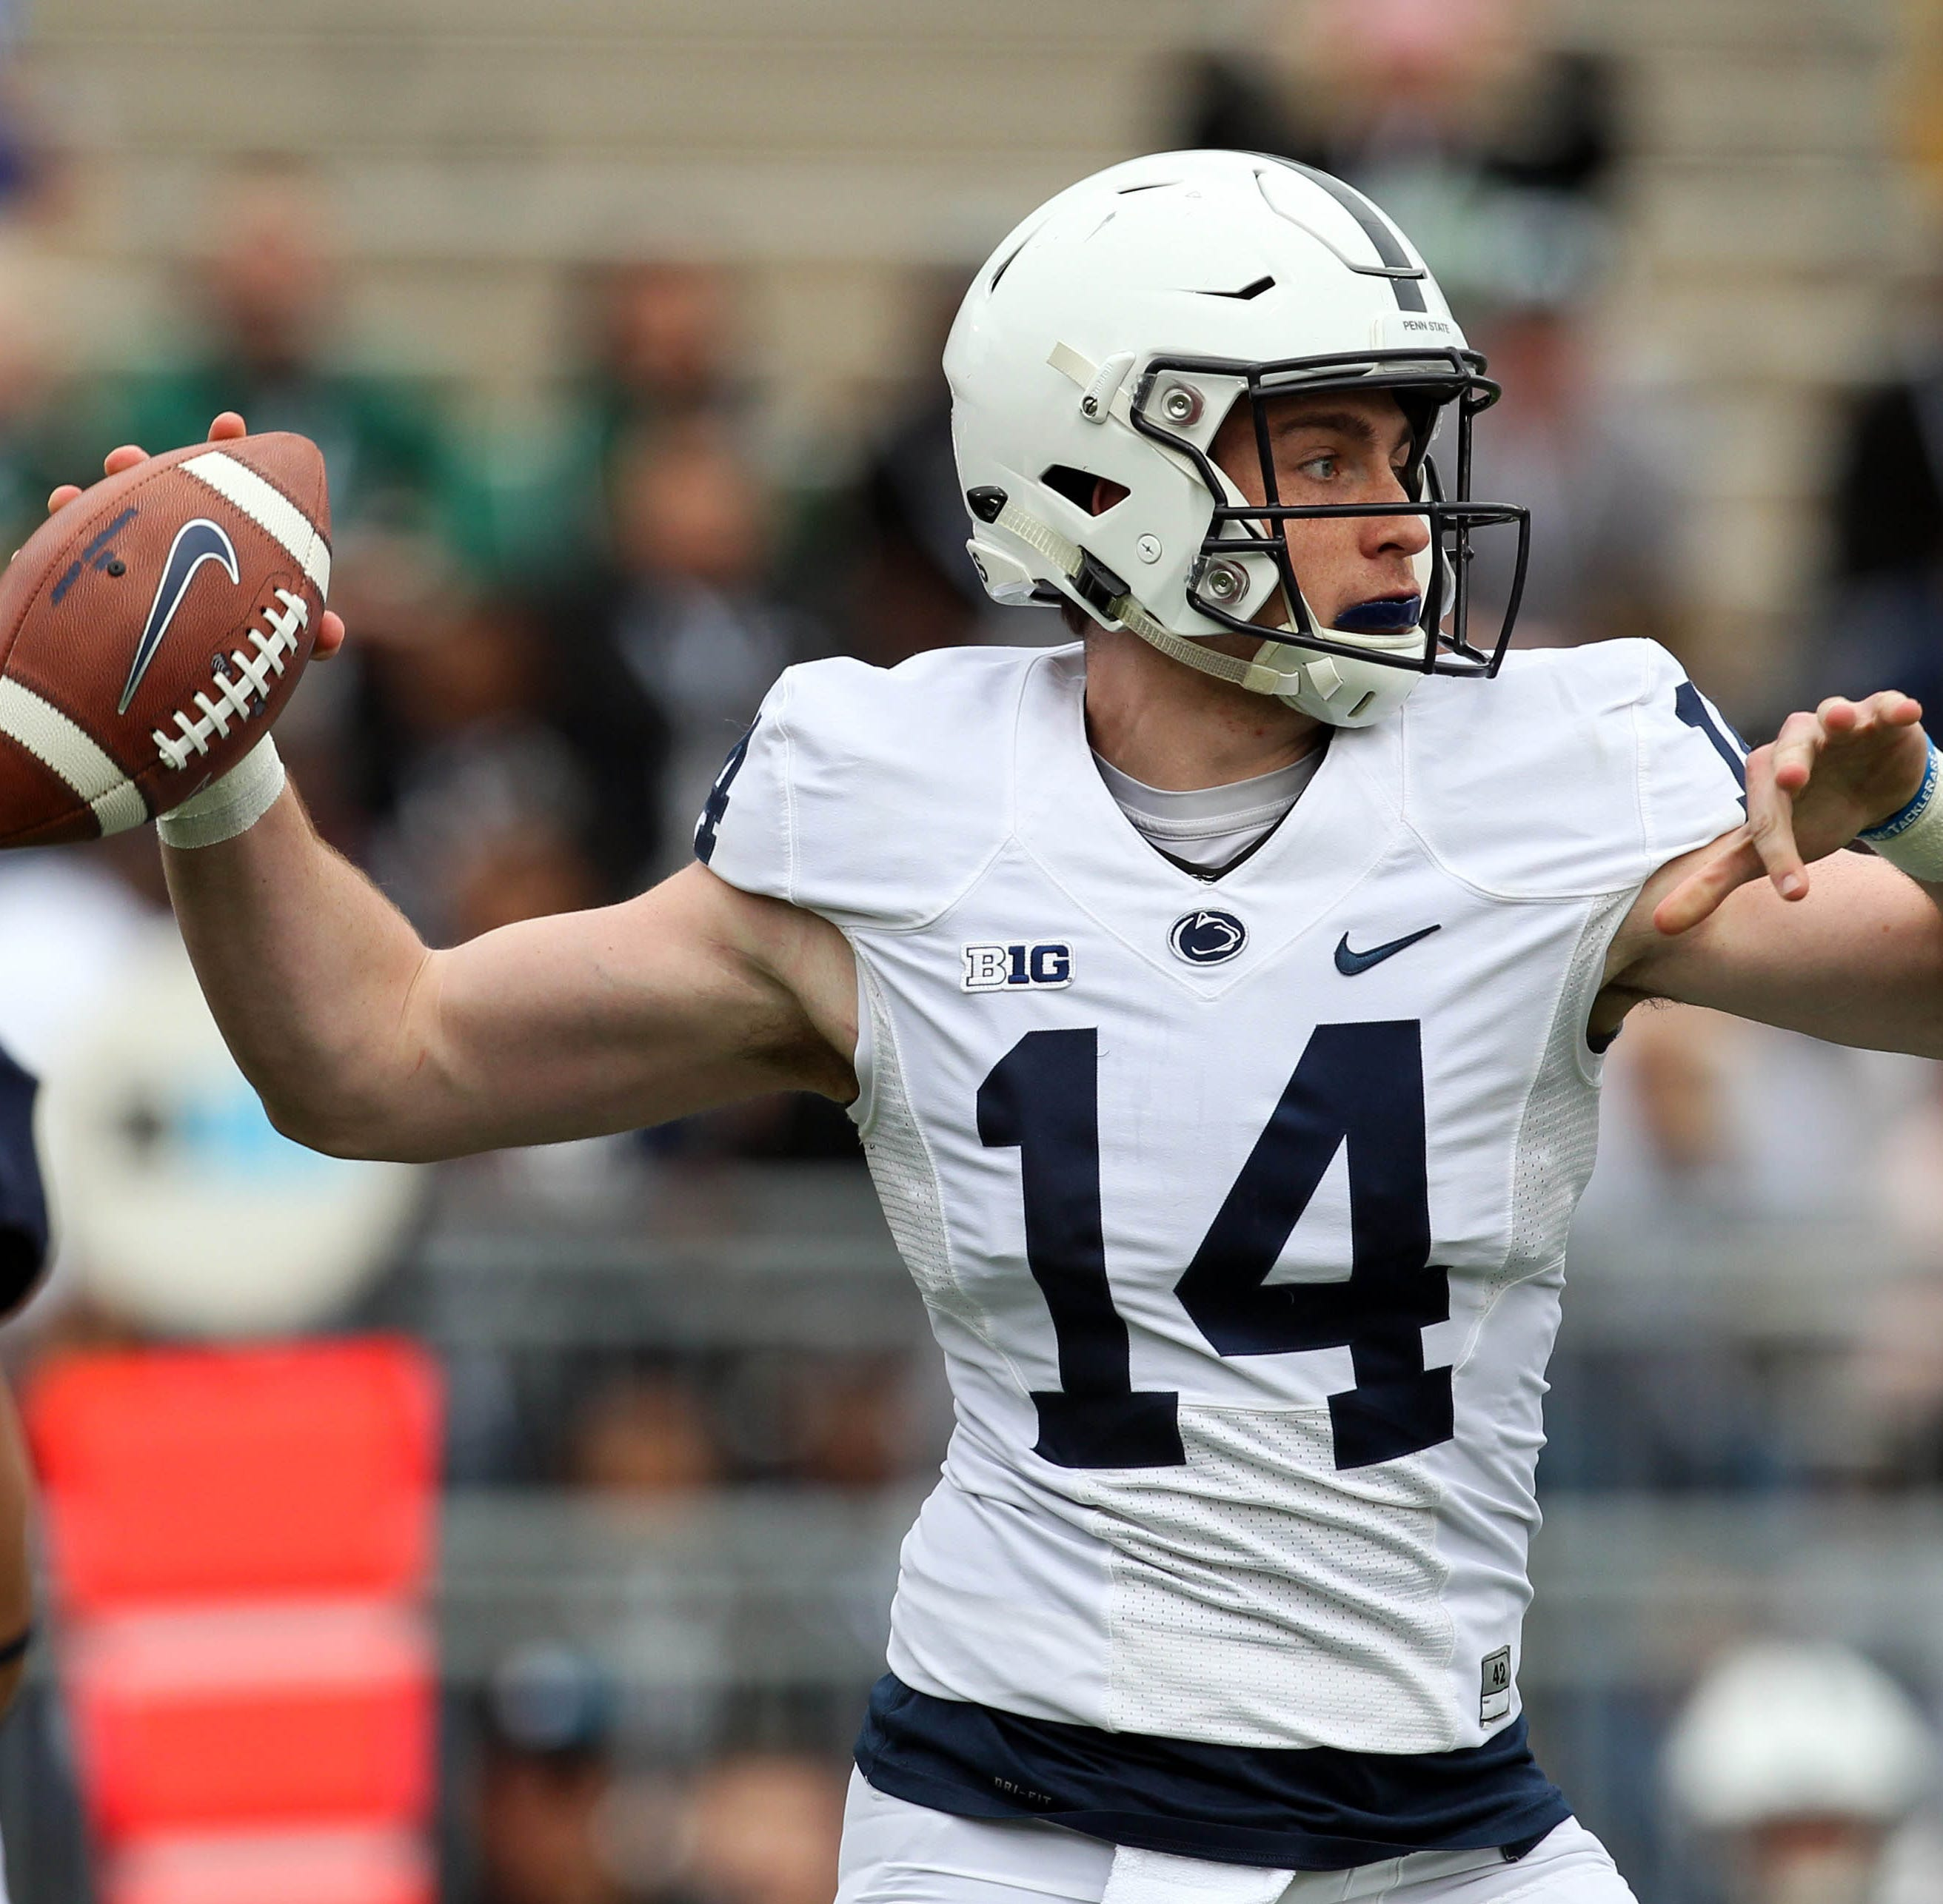 Penn State football: No Tommy Stevens, no closer to quarterback answers after Blue-White